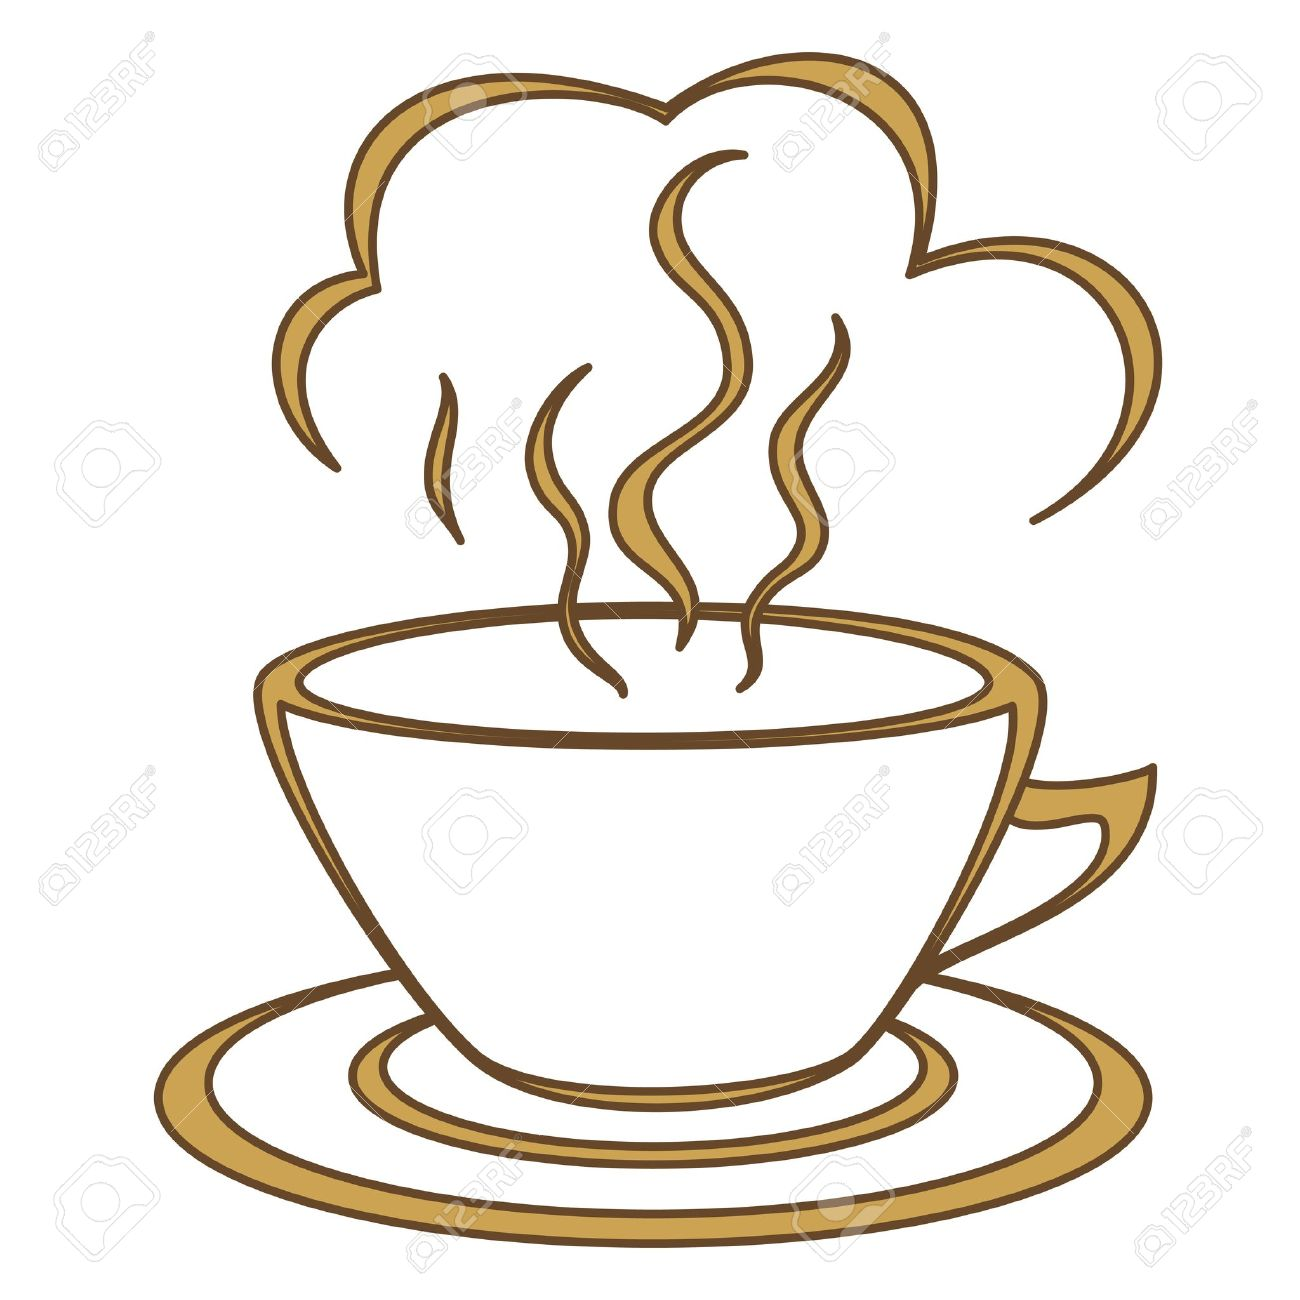 Teacup clipart coffee morning Steam joyful good cup coffee